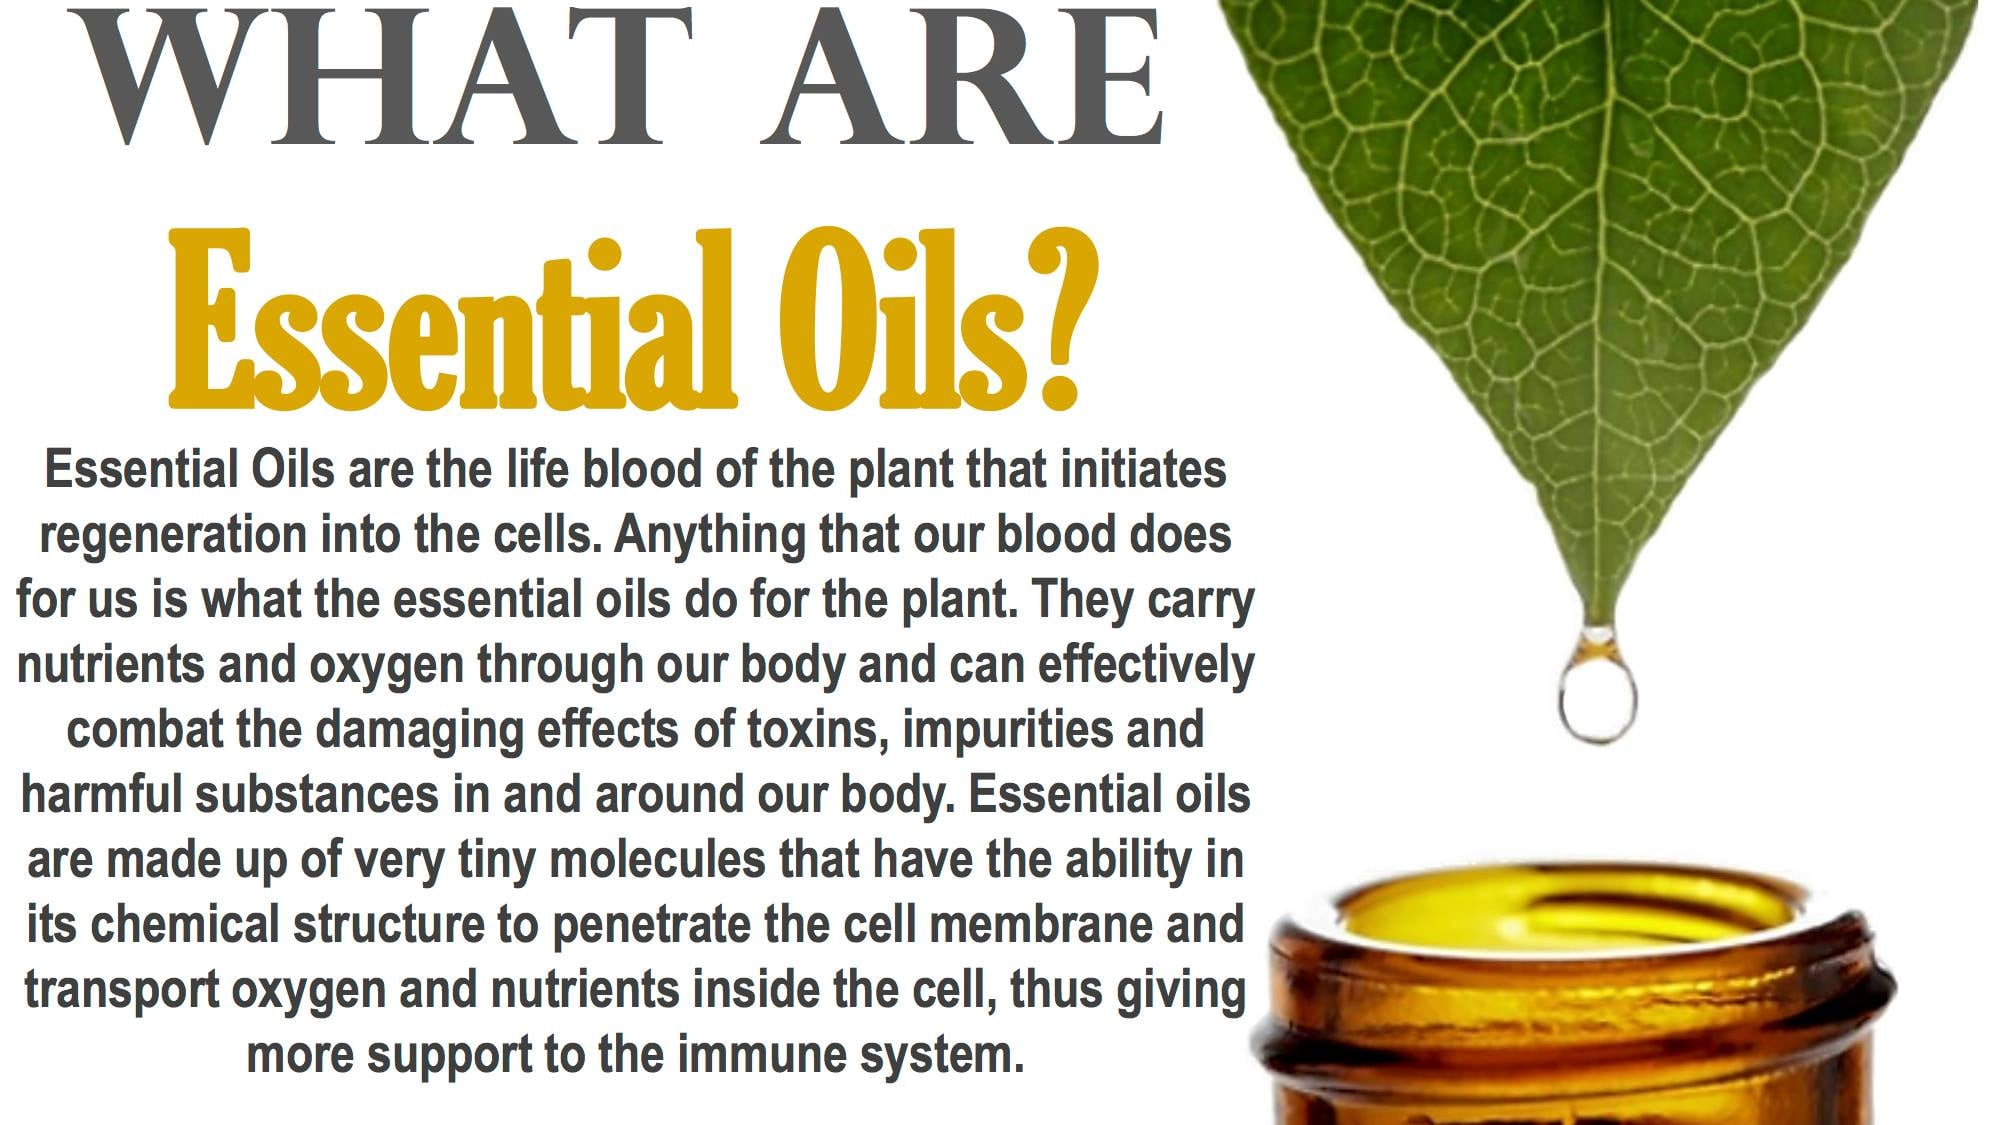 5-what are essential oils.jpg